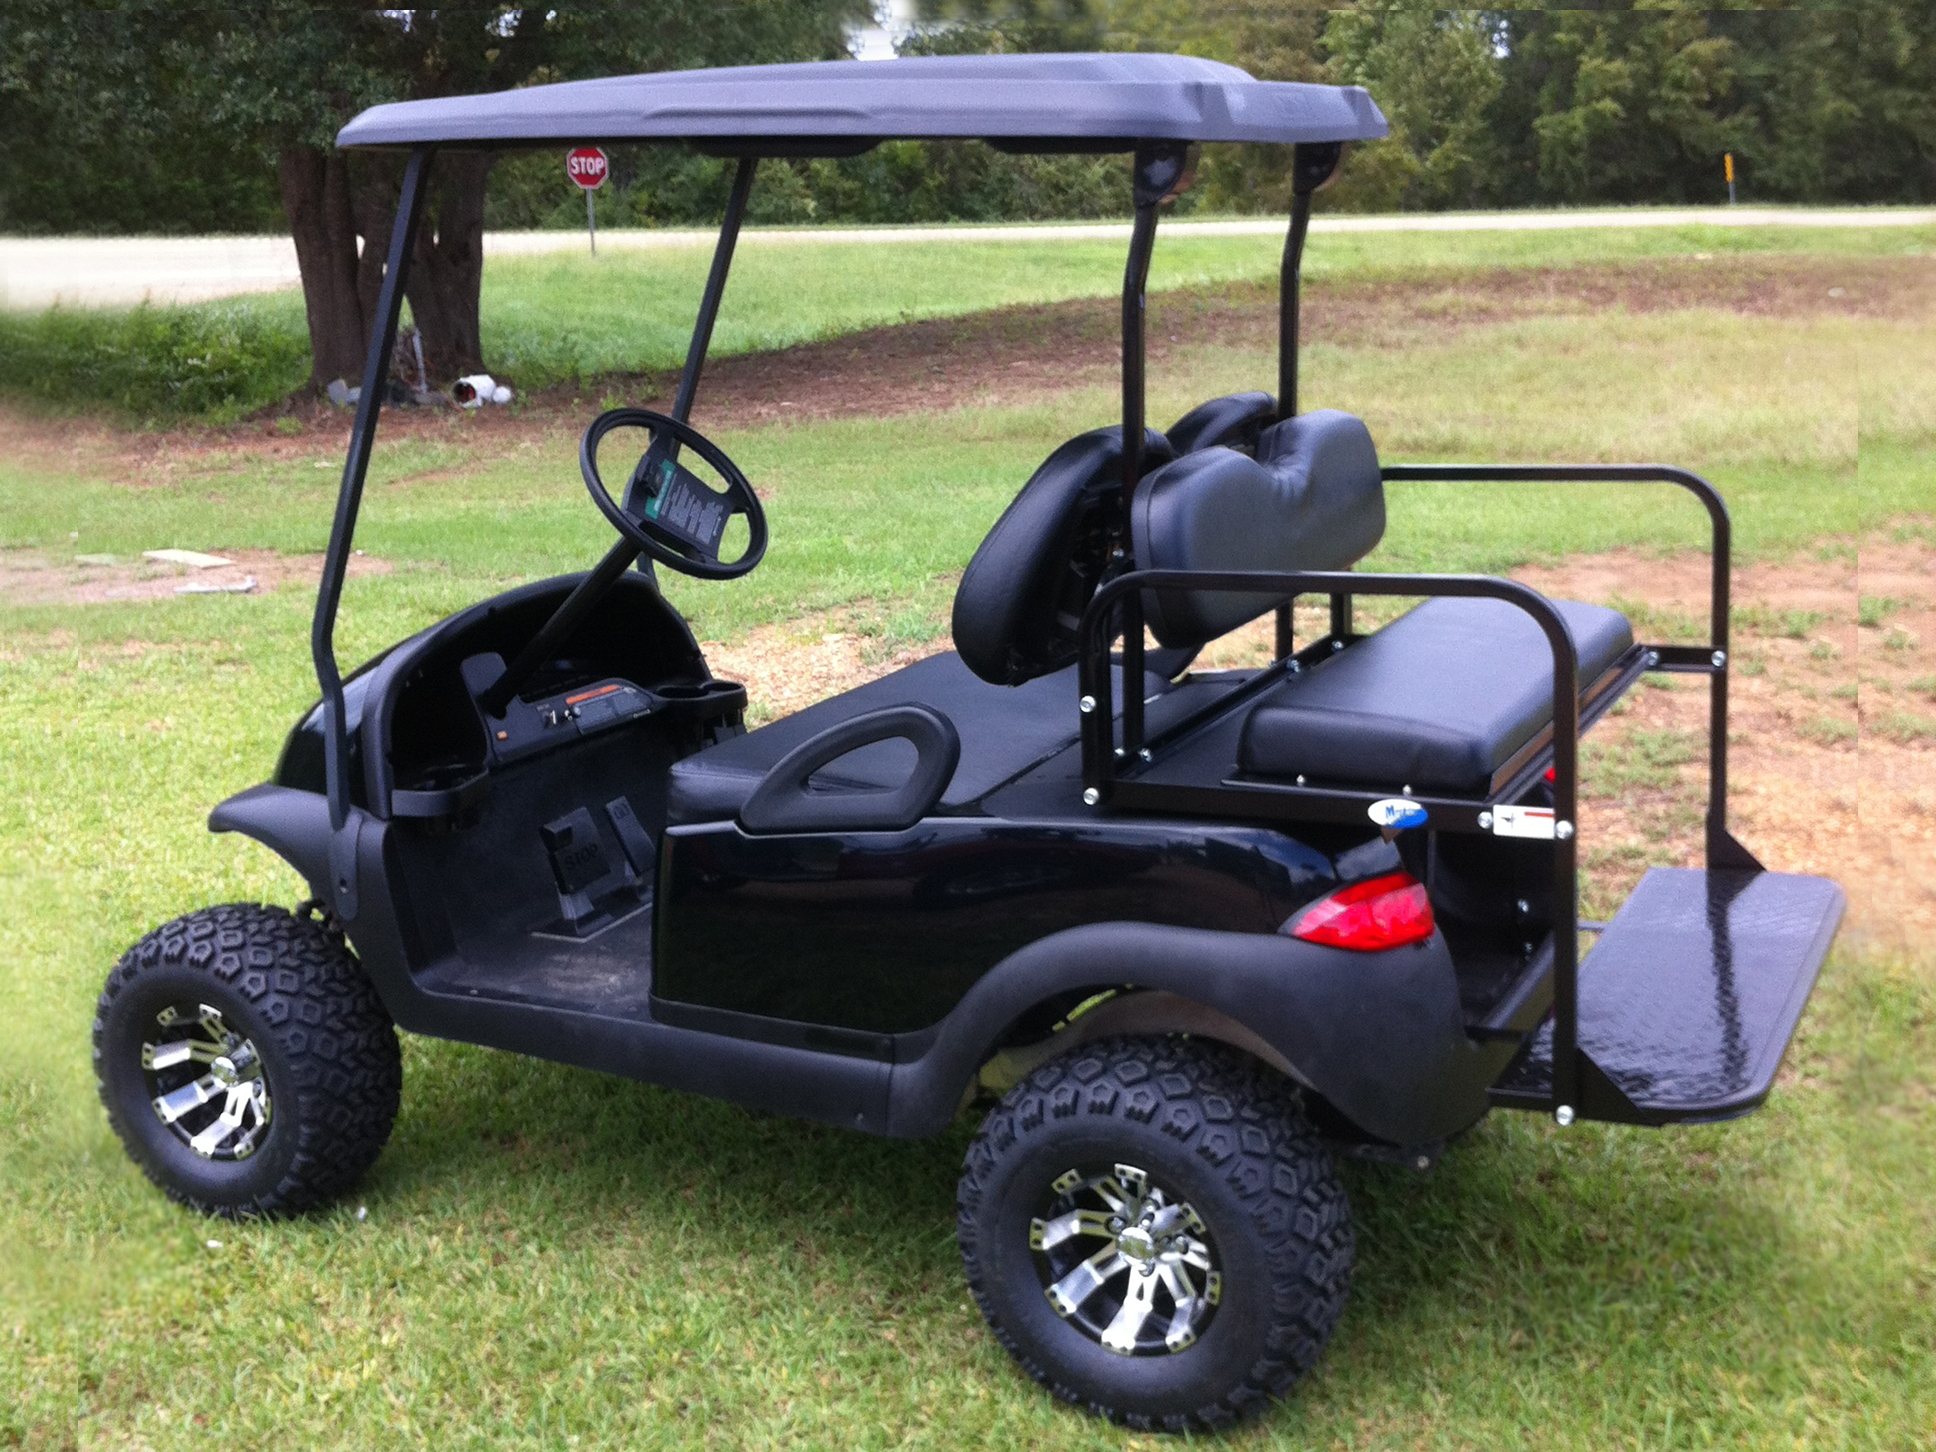 Finding The Right Golf Cart Accessories How To Choose The Best